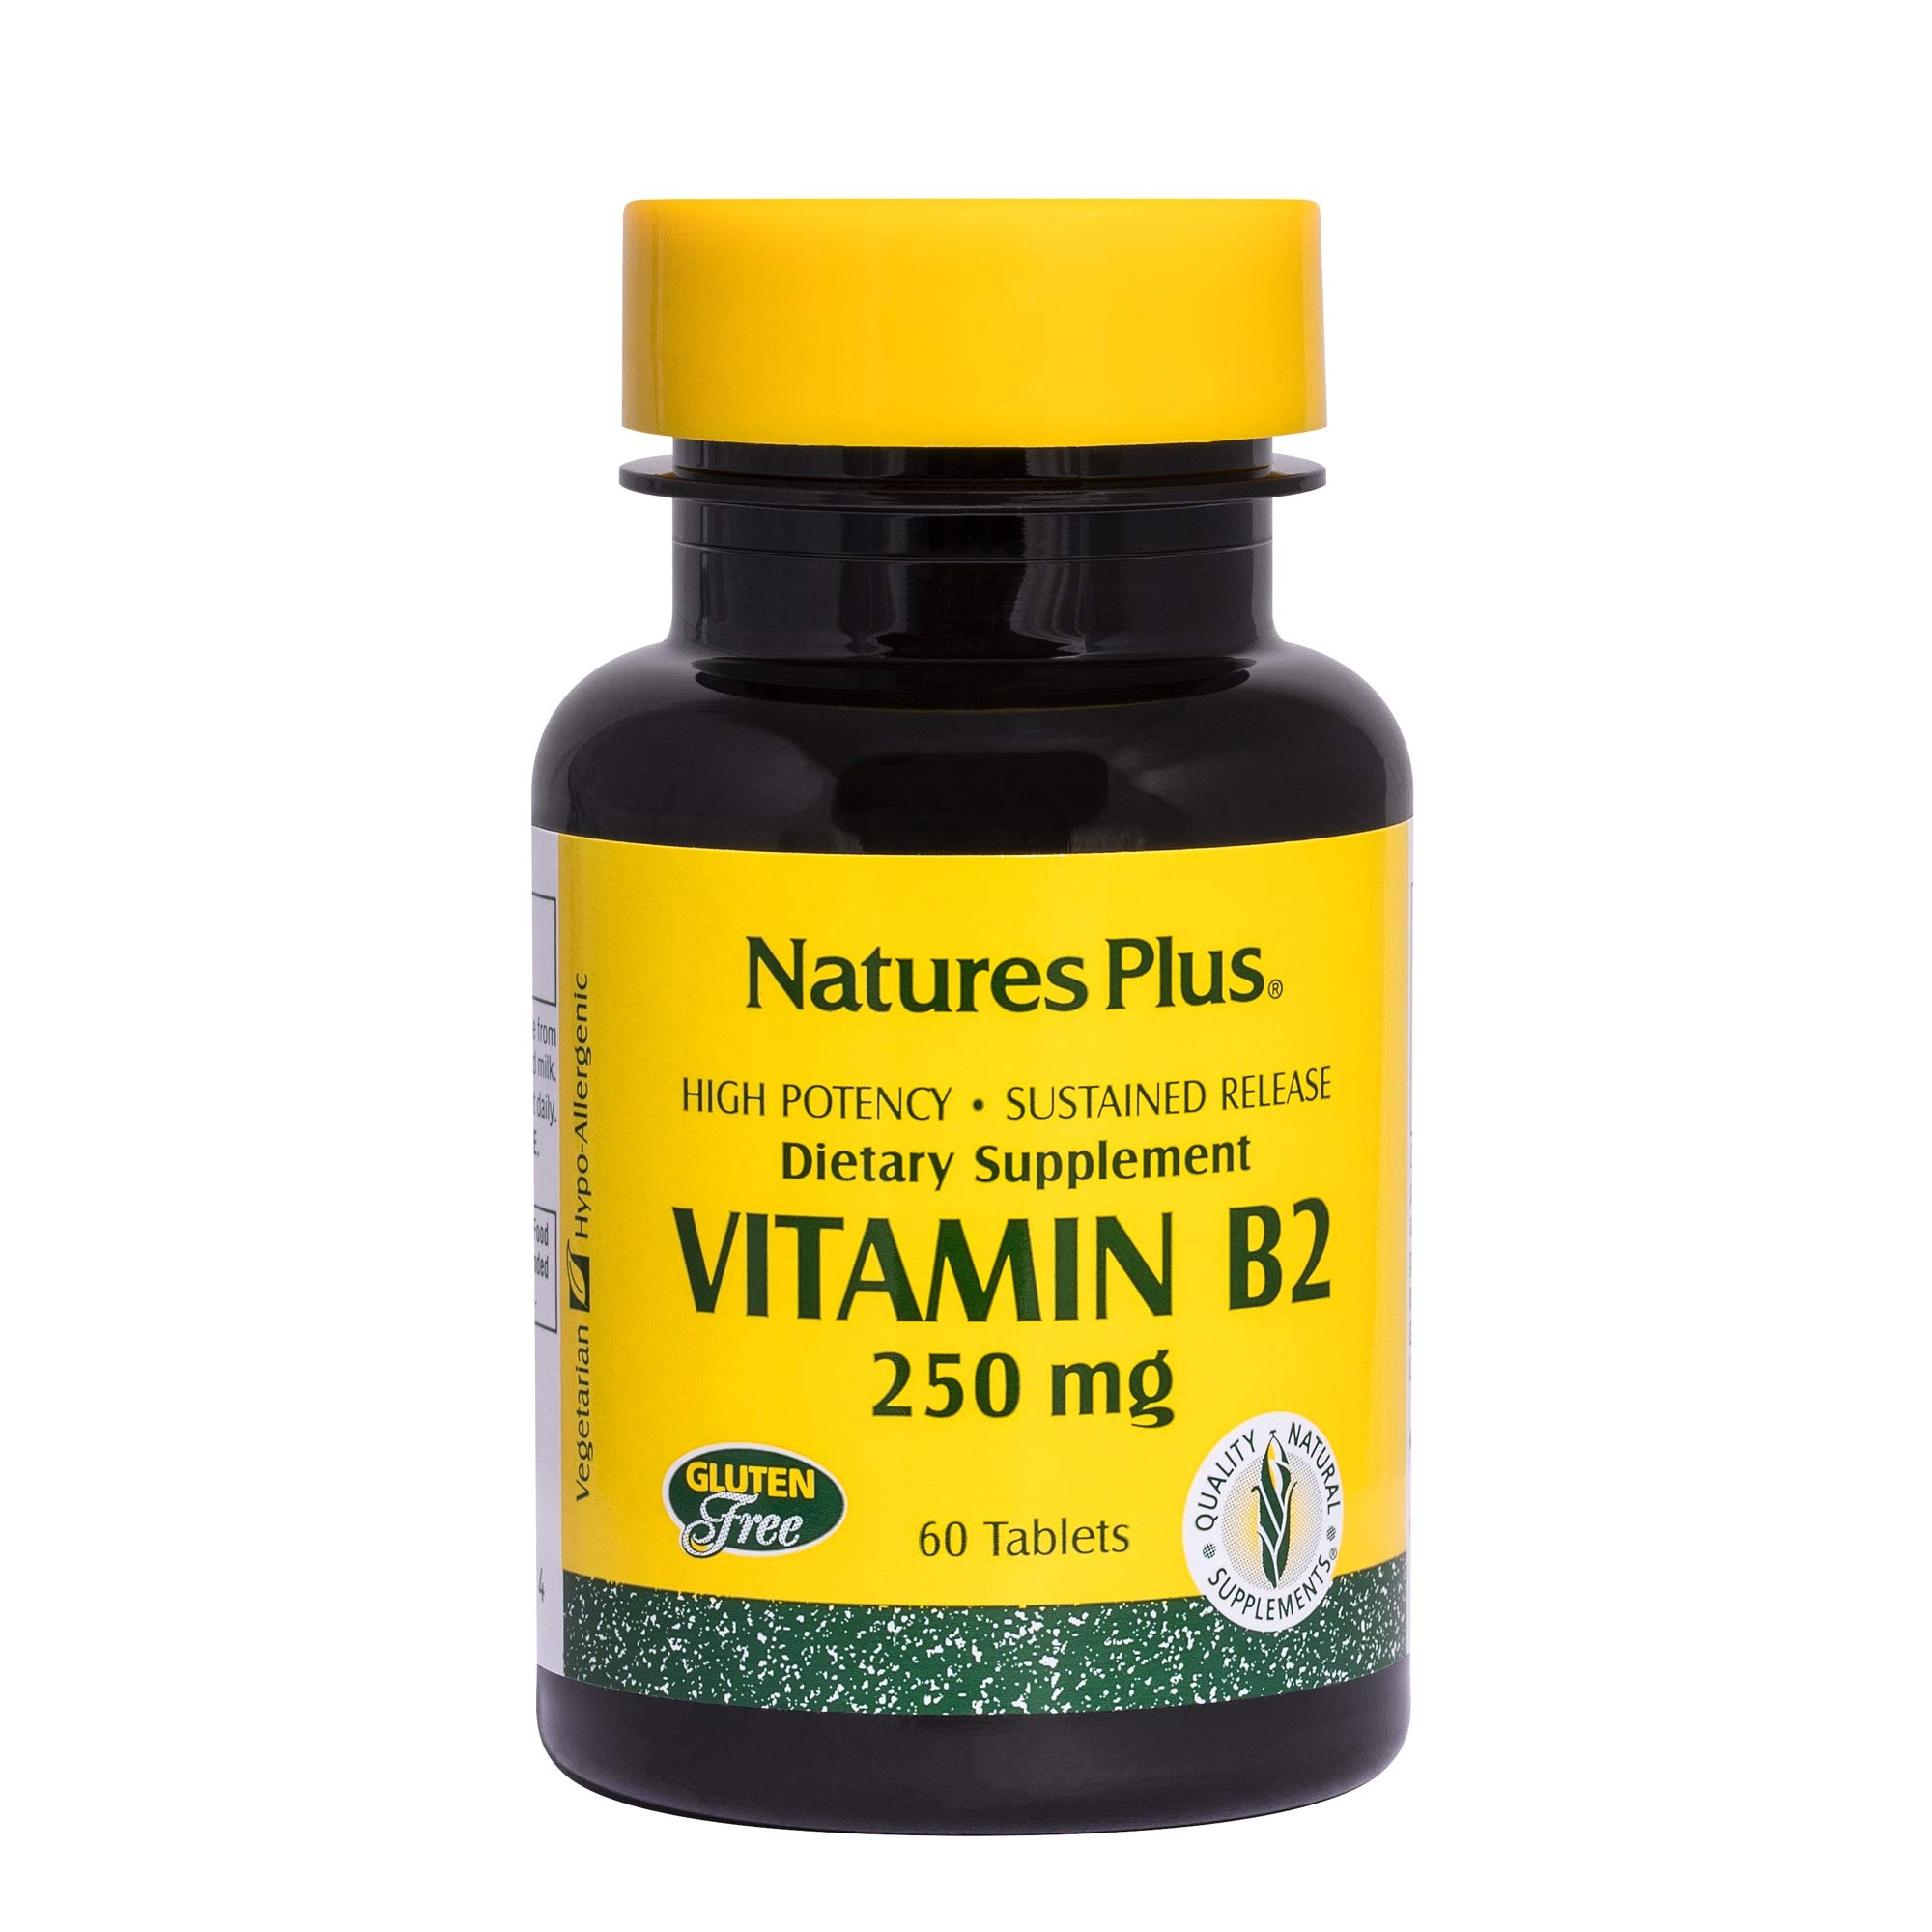 NaturesPlus Vitamin B2 (Riboflavin) - 250 mg, 60 Vegetarian Tablets, Sustained Release - Natural Energy & Metabolism Booster, Promotes Overall Health - Gluten-Free - 60 Servings by Nature's Plus